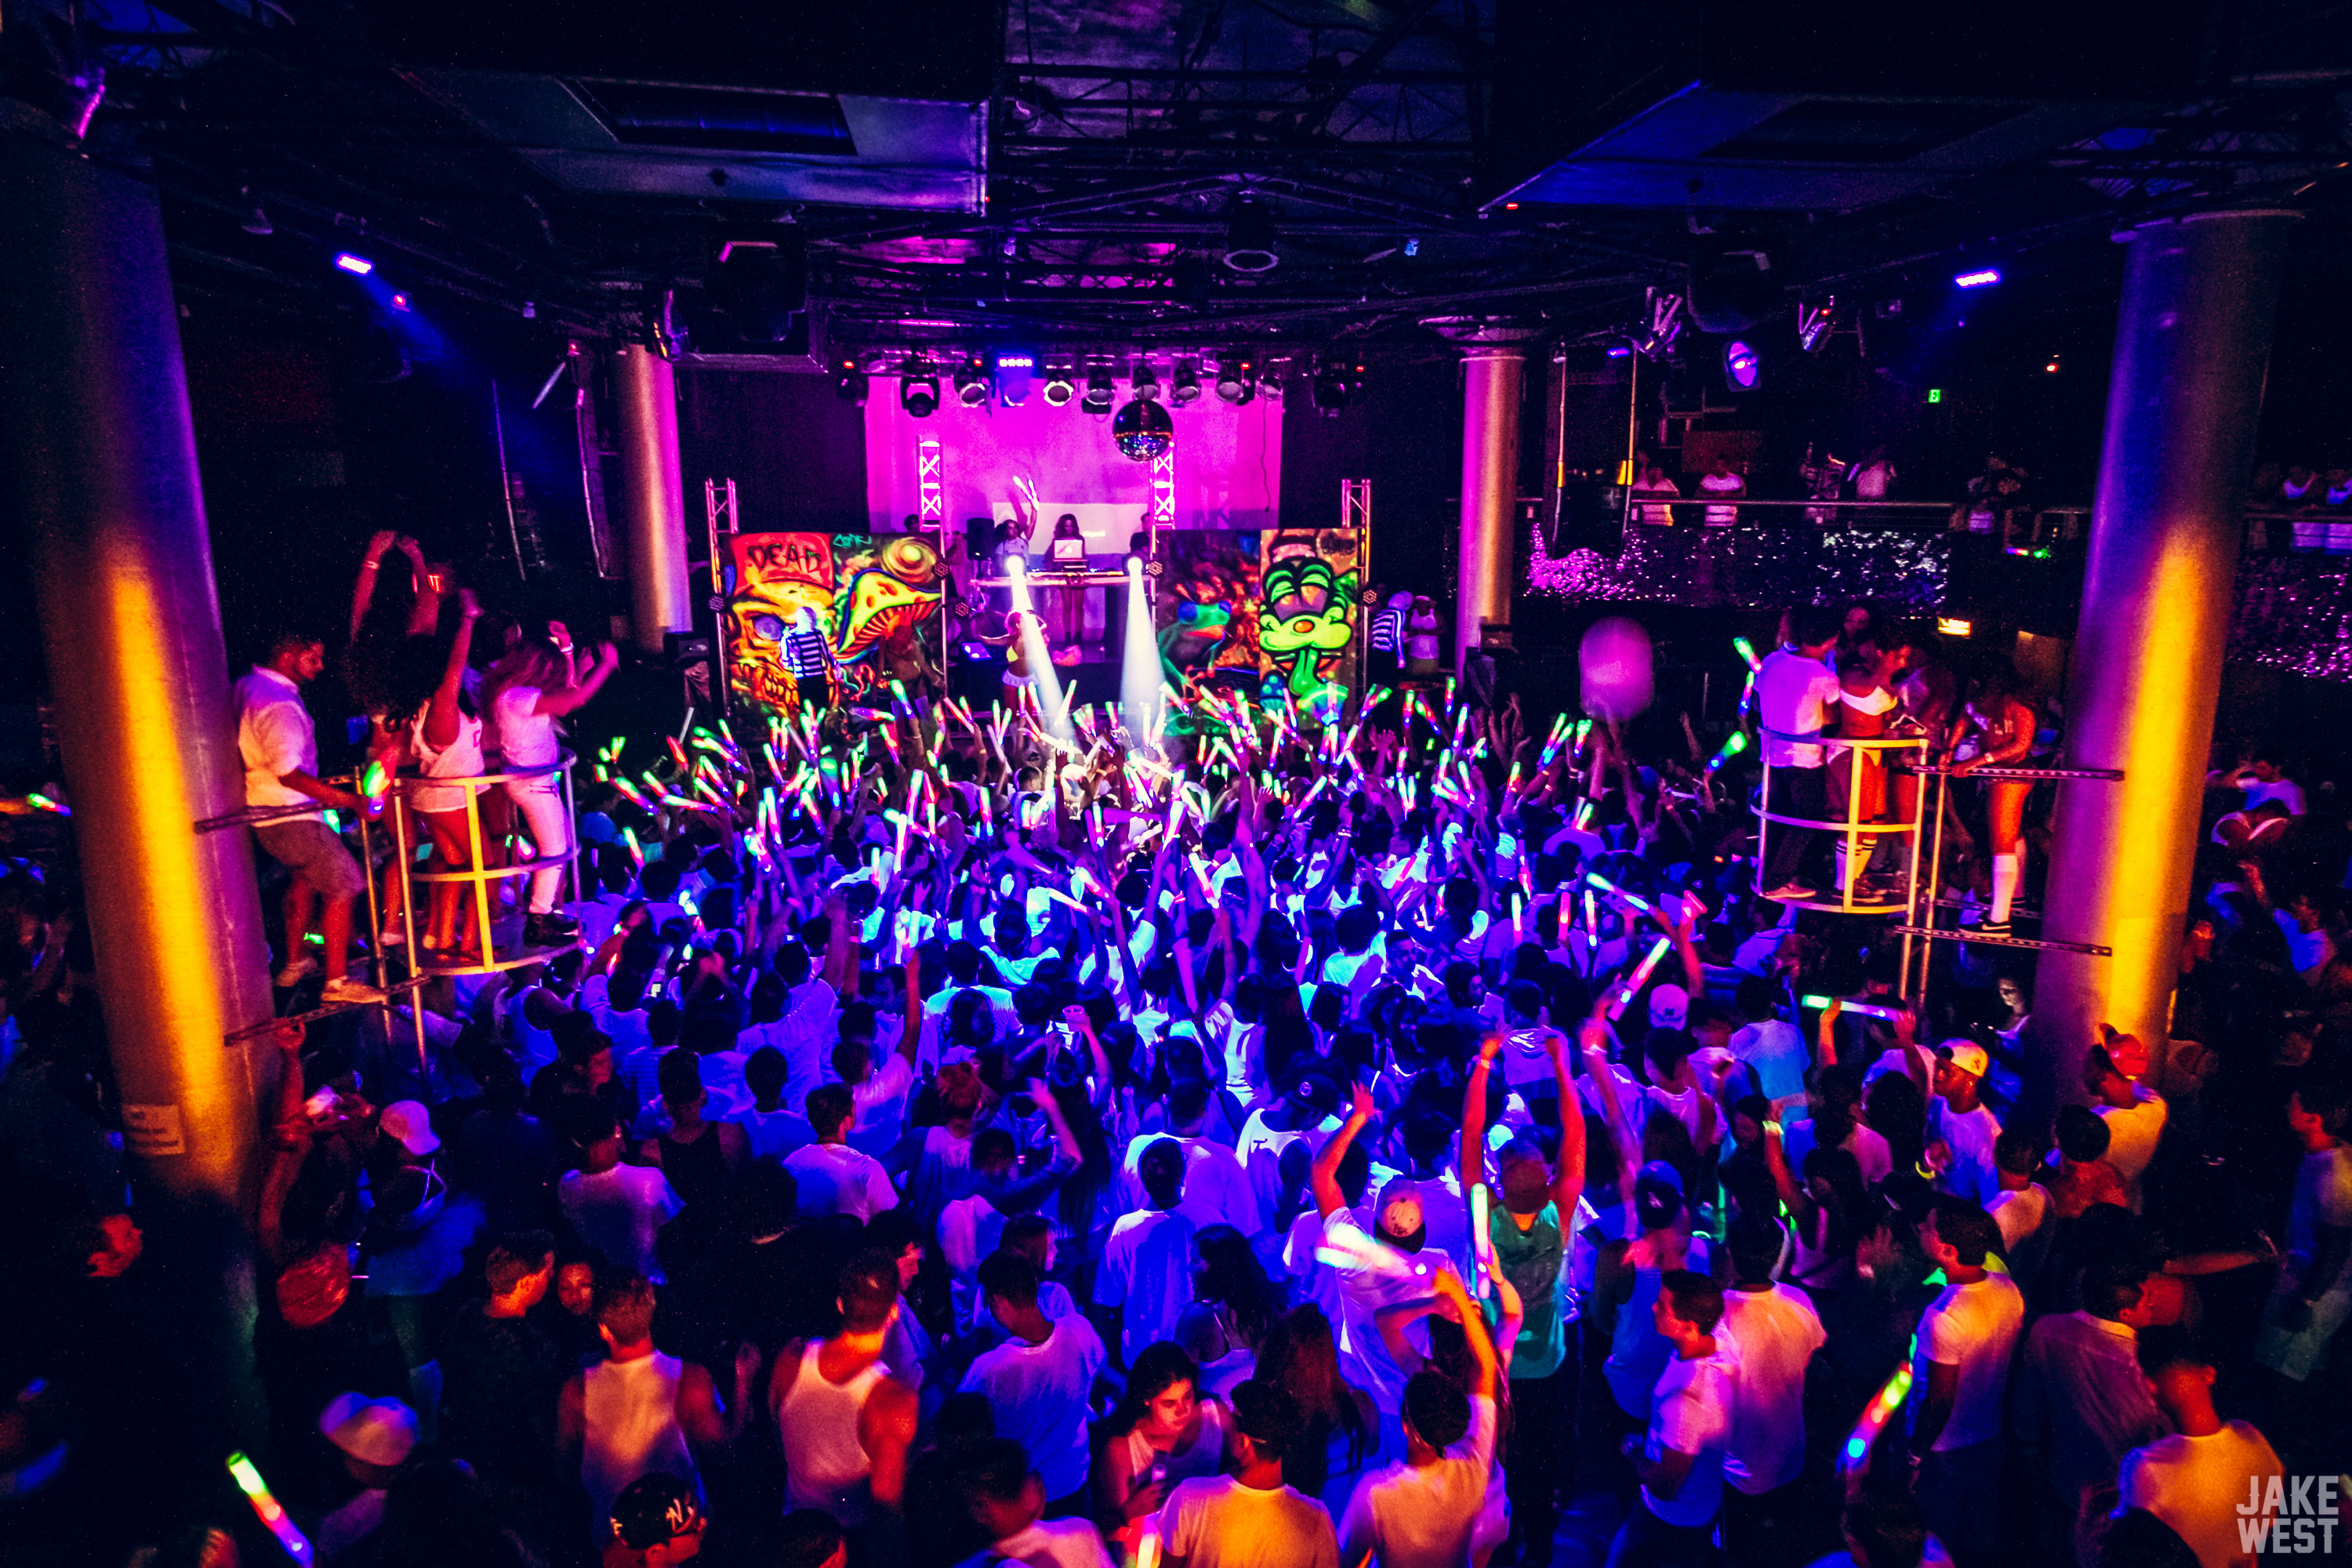 Neon Paint Party in Hollywood Tickets 11/26/14